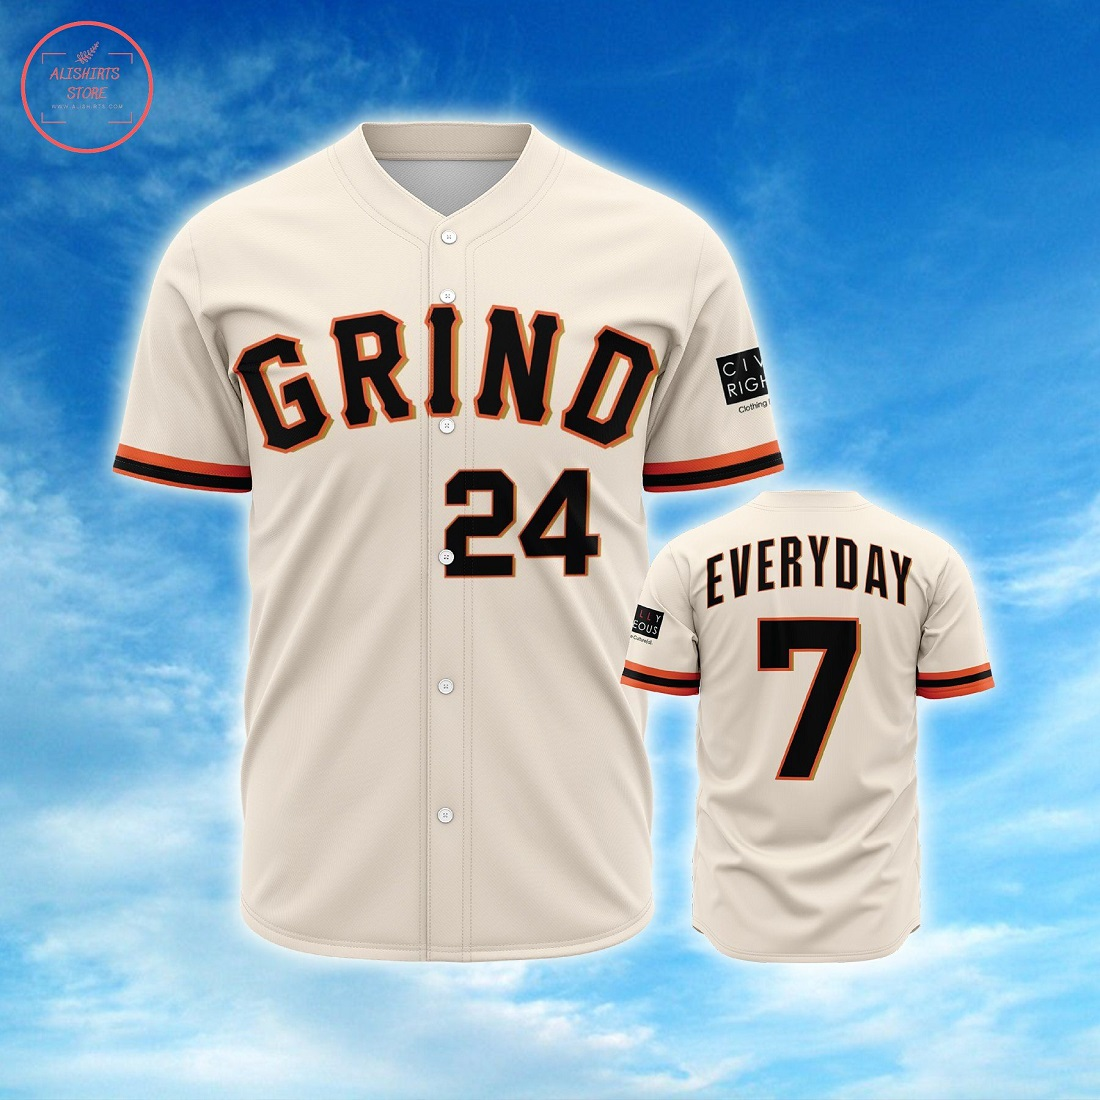 Grind Everyday Personalized Baseball Jersey